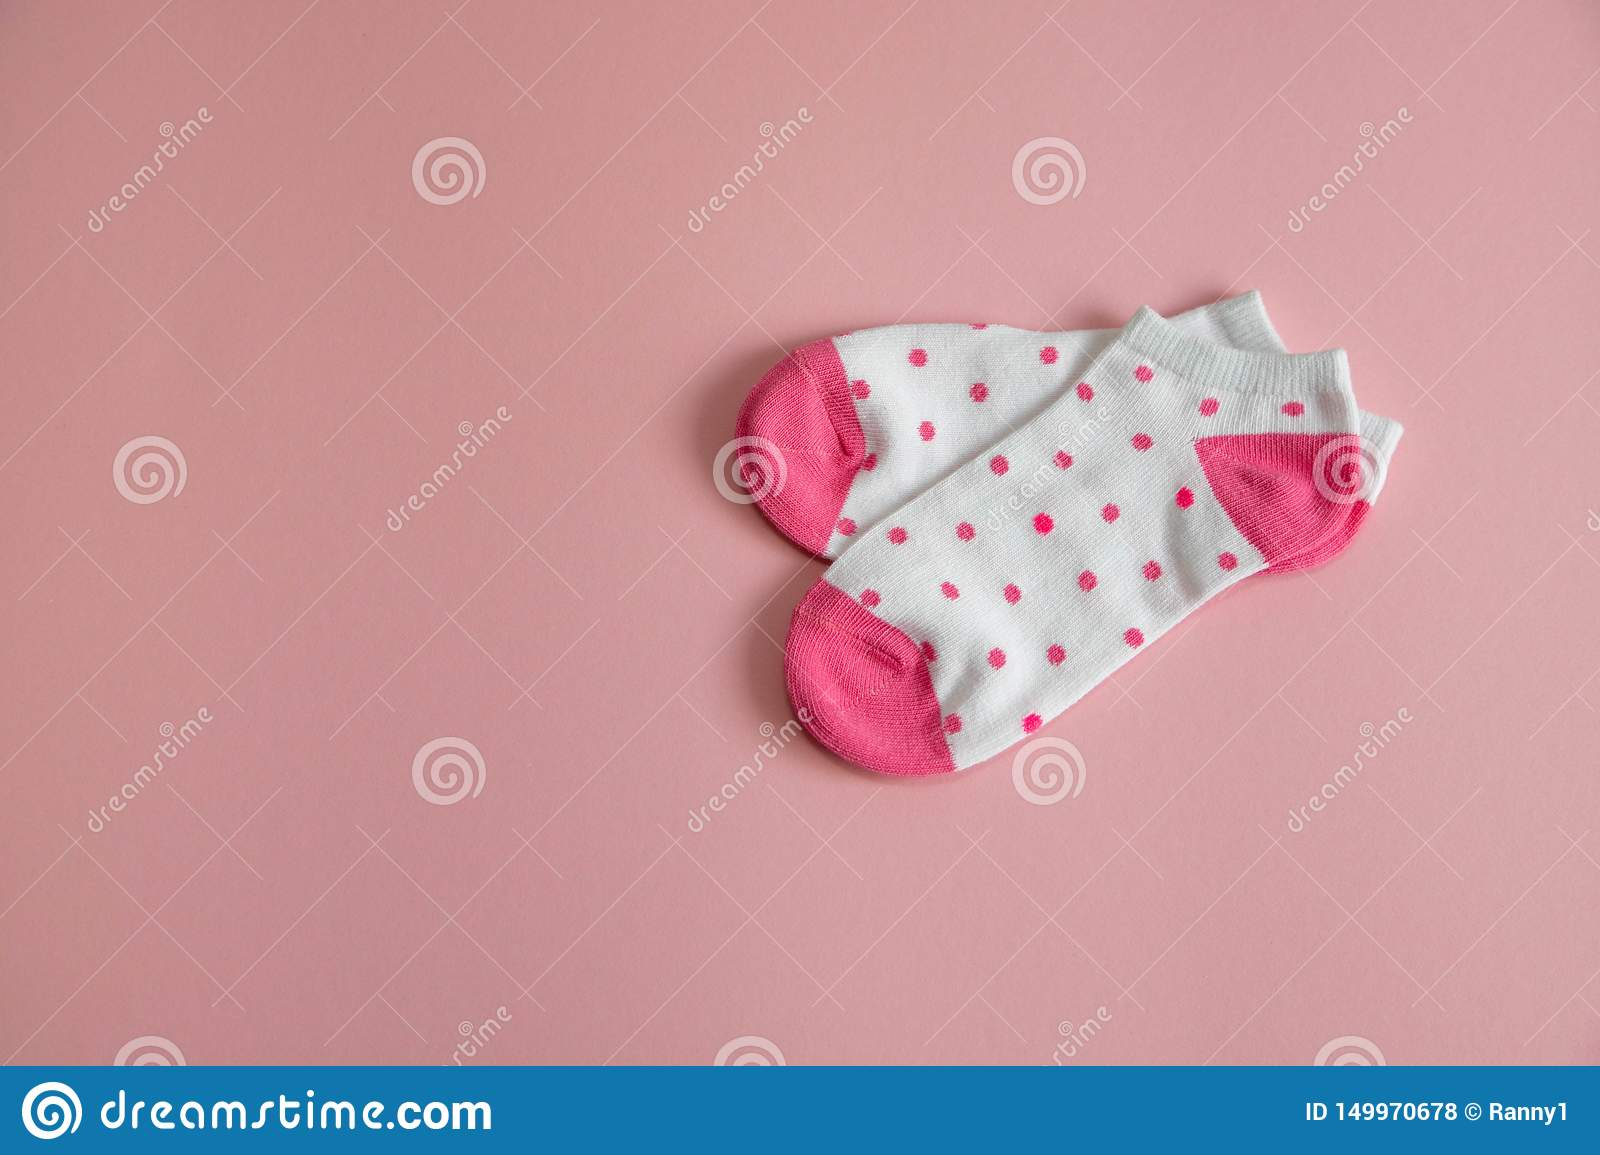 A pair of white socks for children with pink socks and heels, with pink dots, on a pink background. Socks for girls